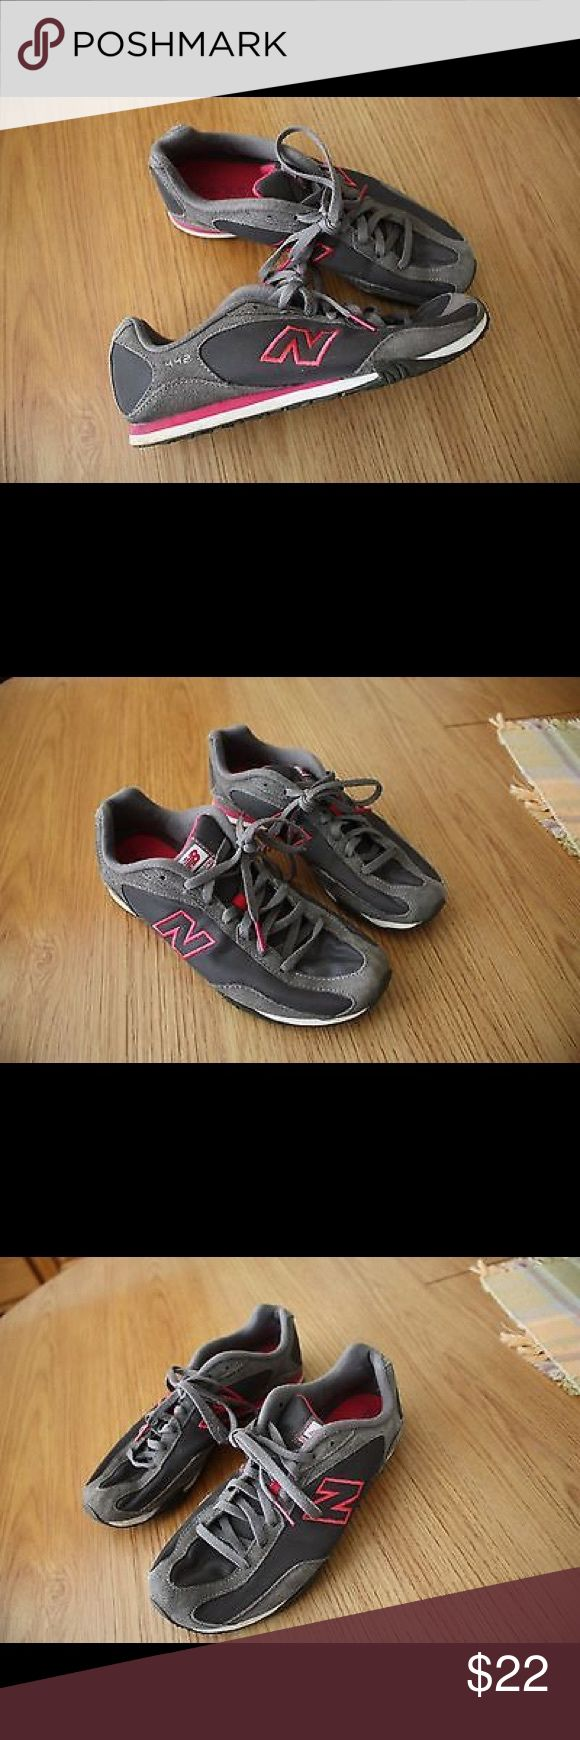 Women's New Balance 442 Walking Shoes Size 8.5 B Pre-Owned Women's New Balance 442 Walking Shoes Size USA 8.5 B / EUR 40 Sn: WL442CD. See photos for details.  Like-new condition Low-profile silhouette retro sneaker Rubber soles Style:  WL442CD New Balance Shoes Athletic Shoes